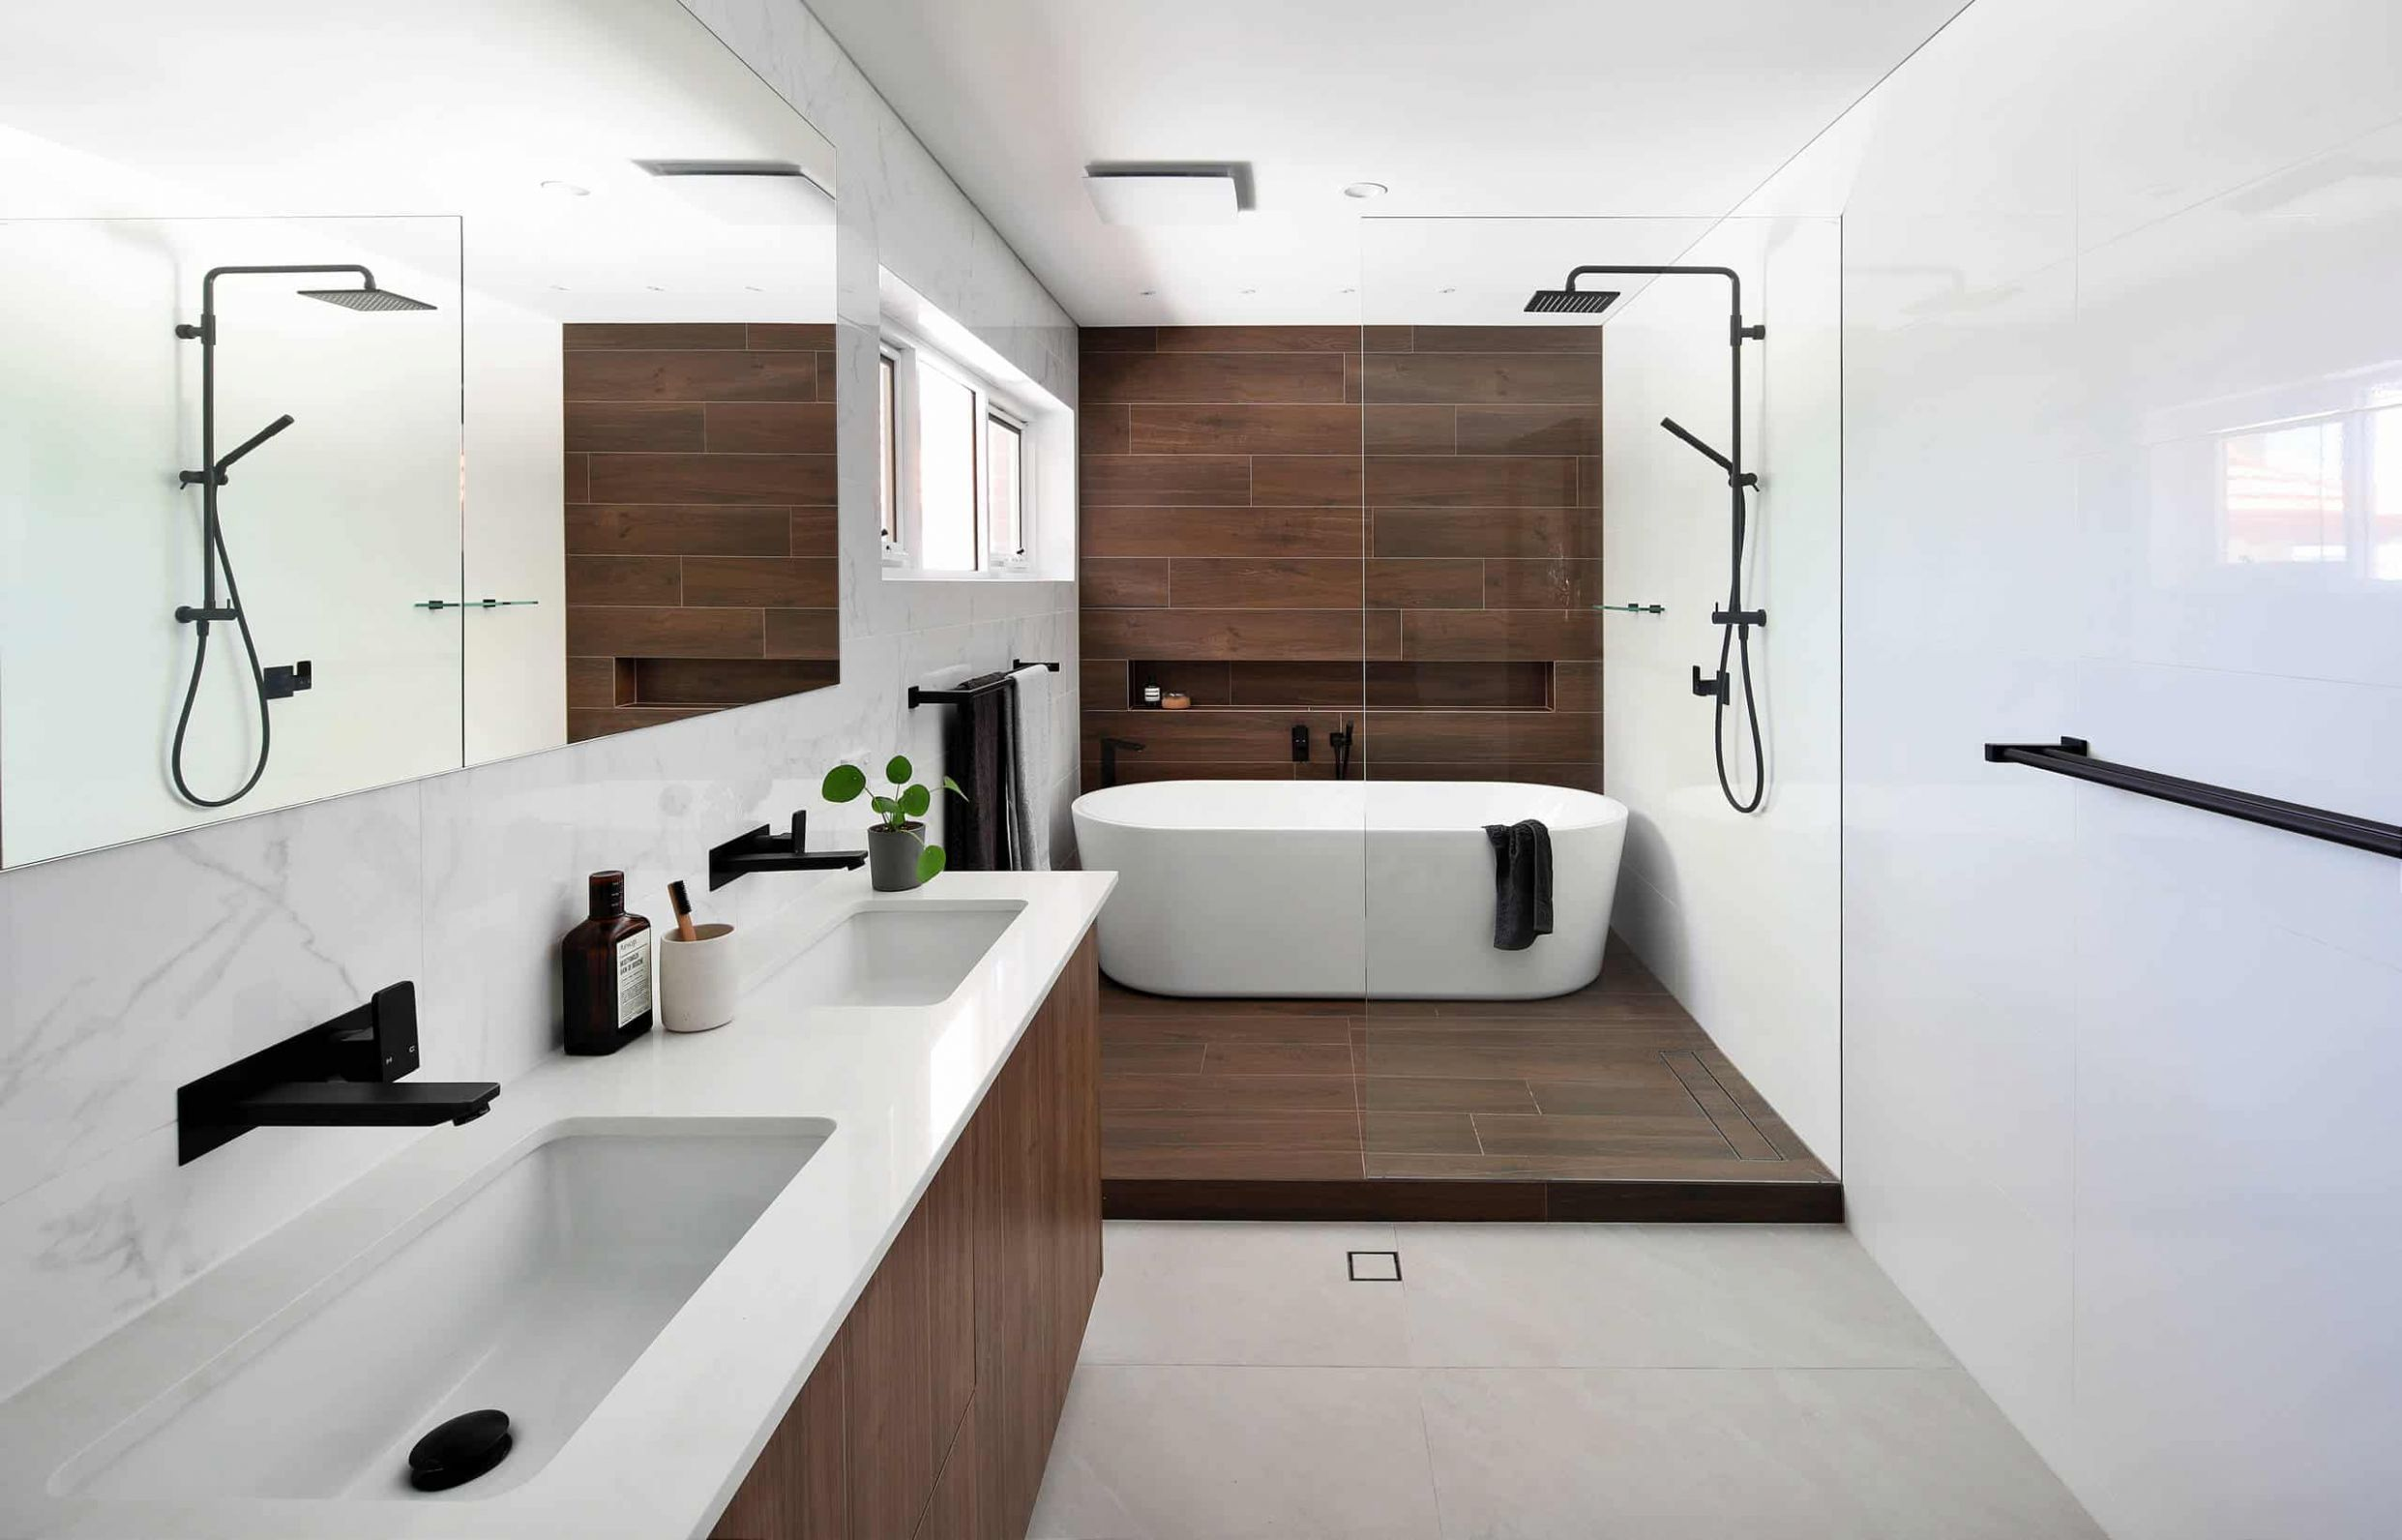 10 Trendy Bathroom Ideas for 10 | Decor Snob